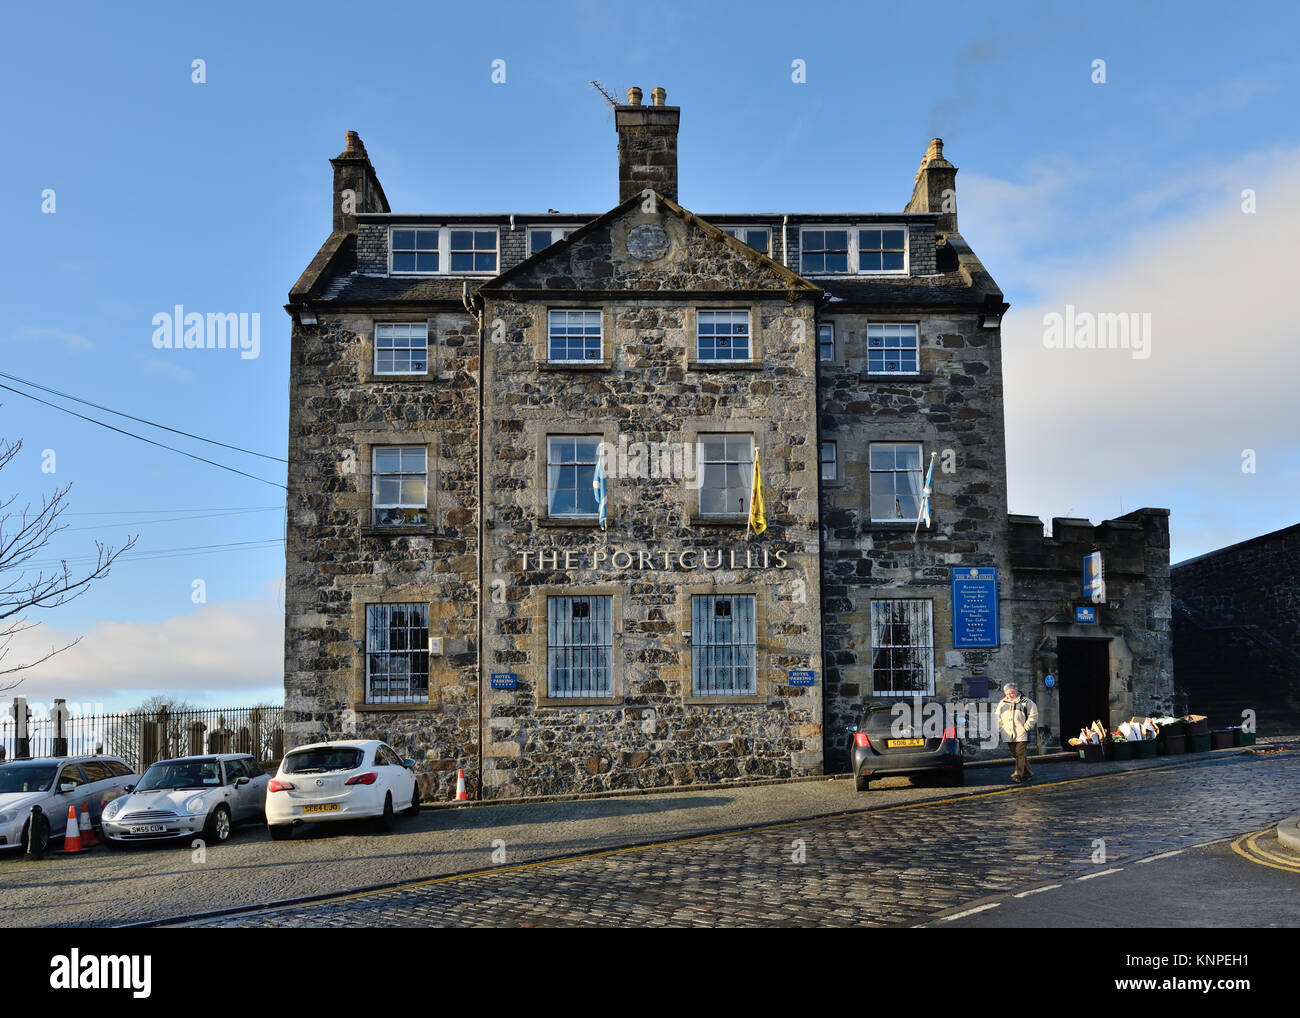 The Portcullis Hotel and restaurant in Stirling, Scotland, UK - Stock Image